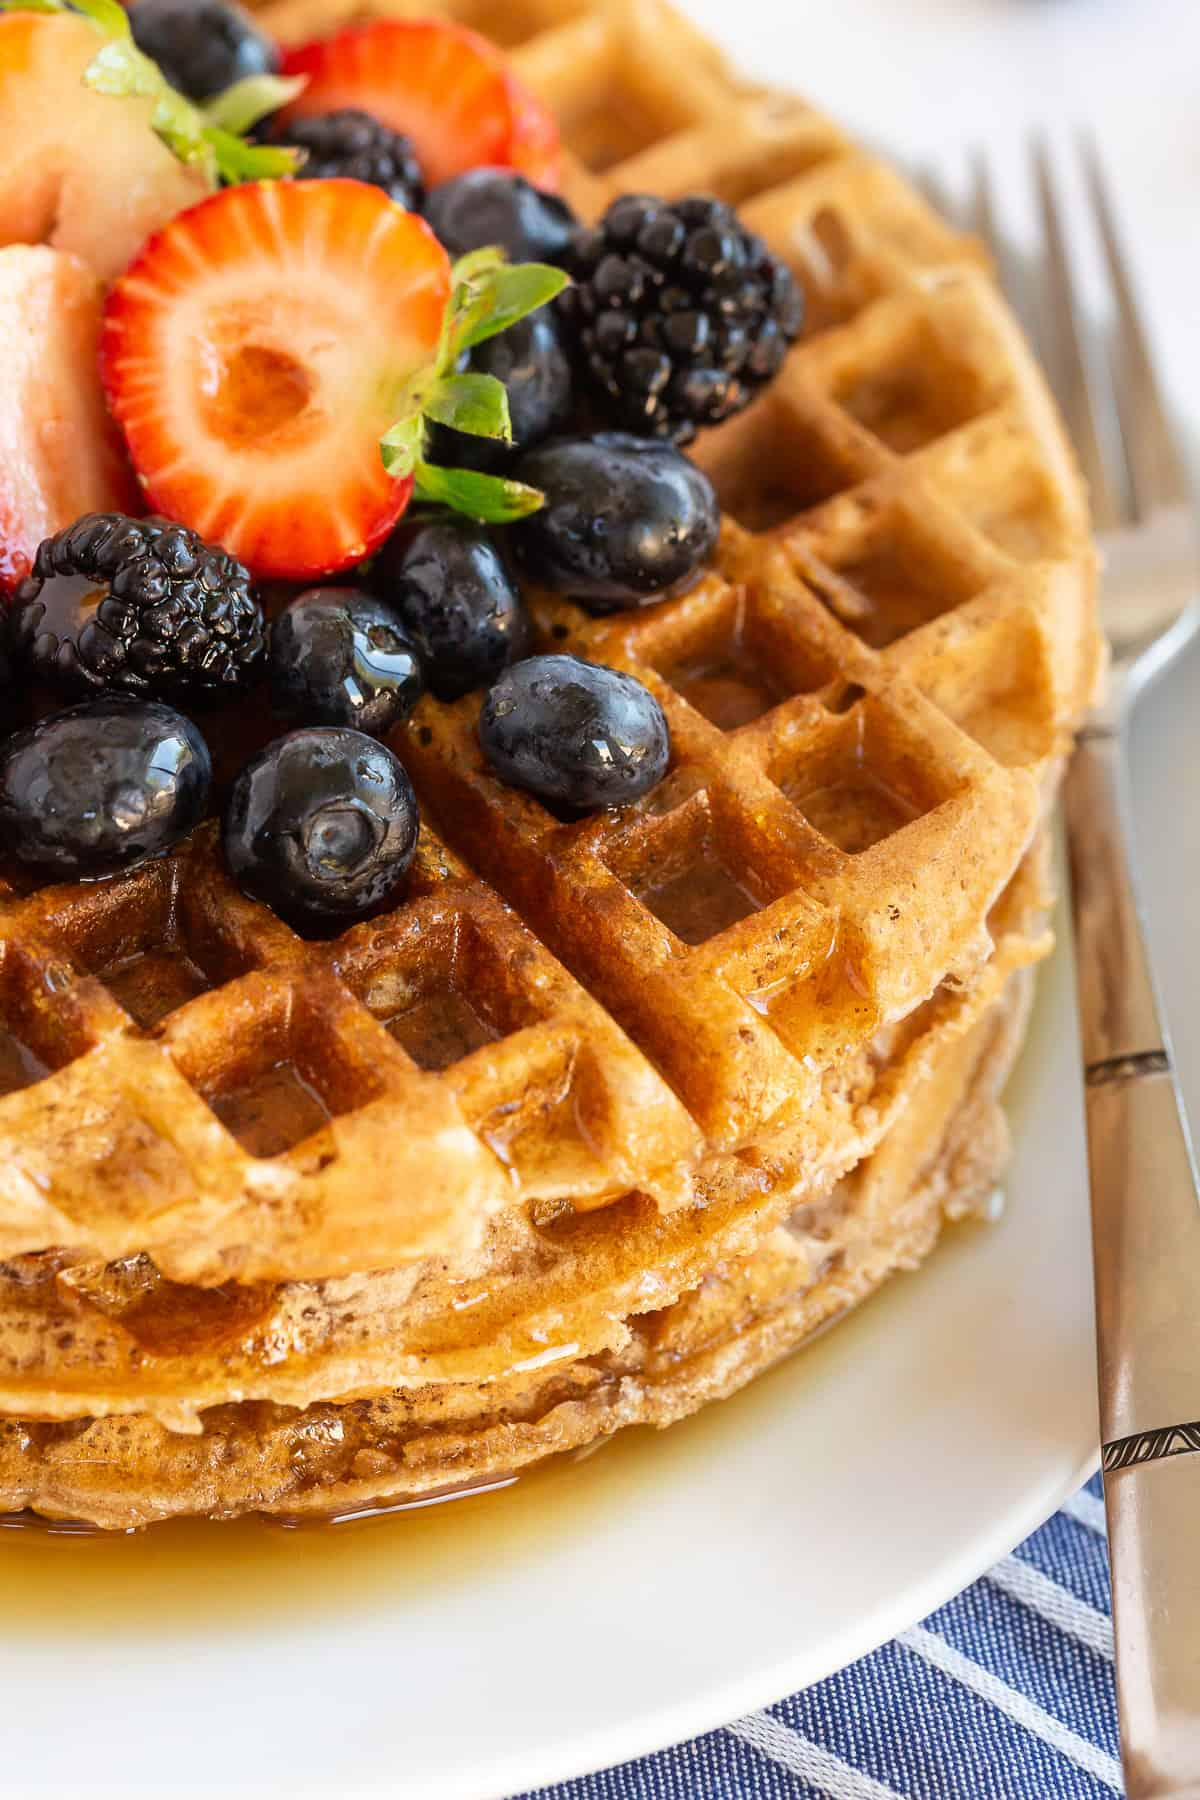 A closeup of a stack of waffles topped with fresh berries.